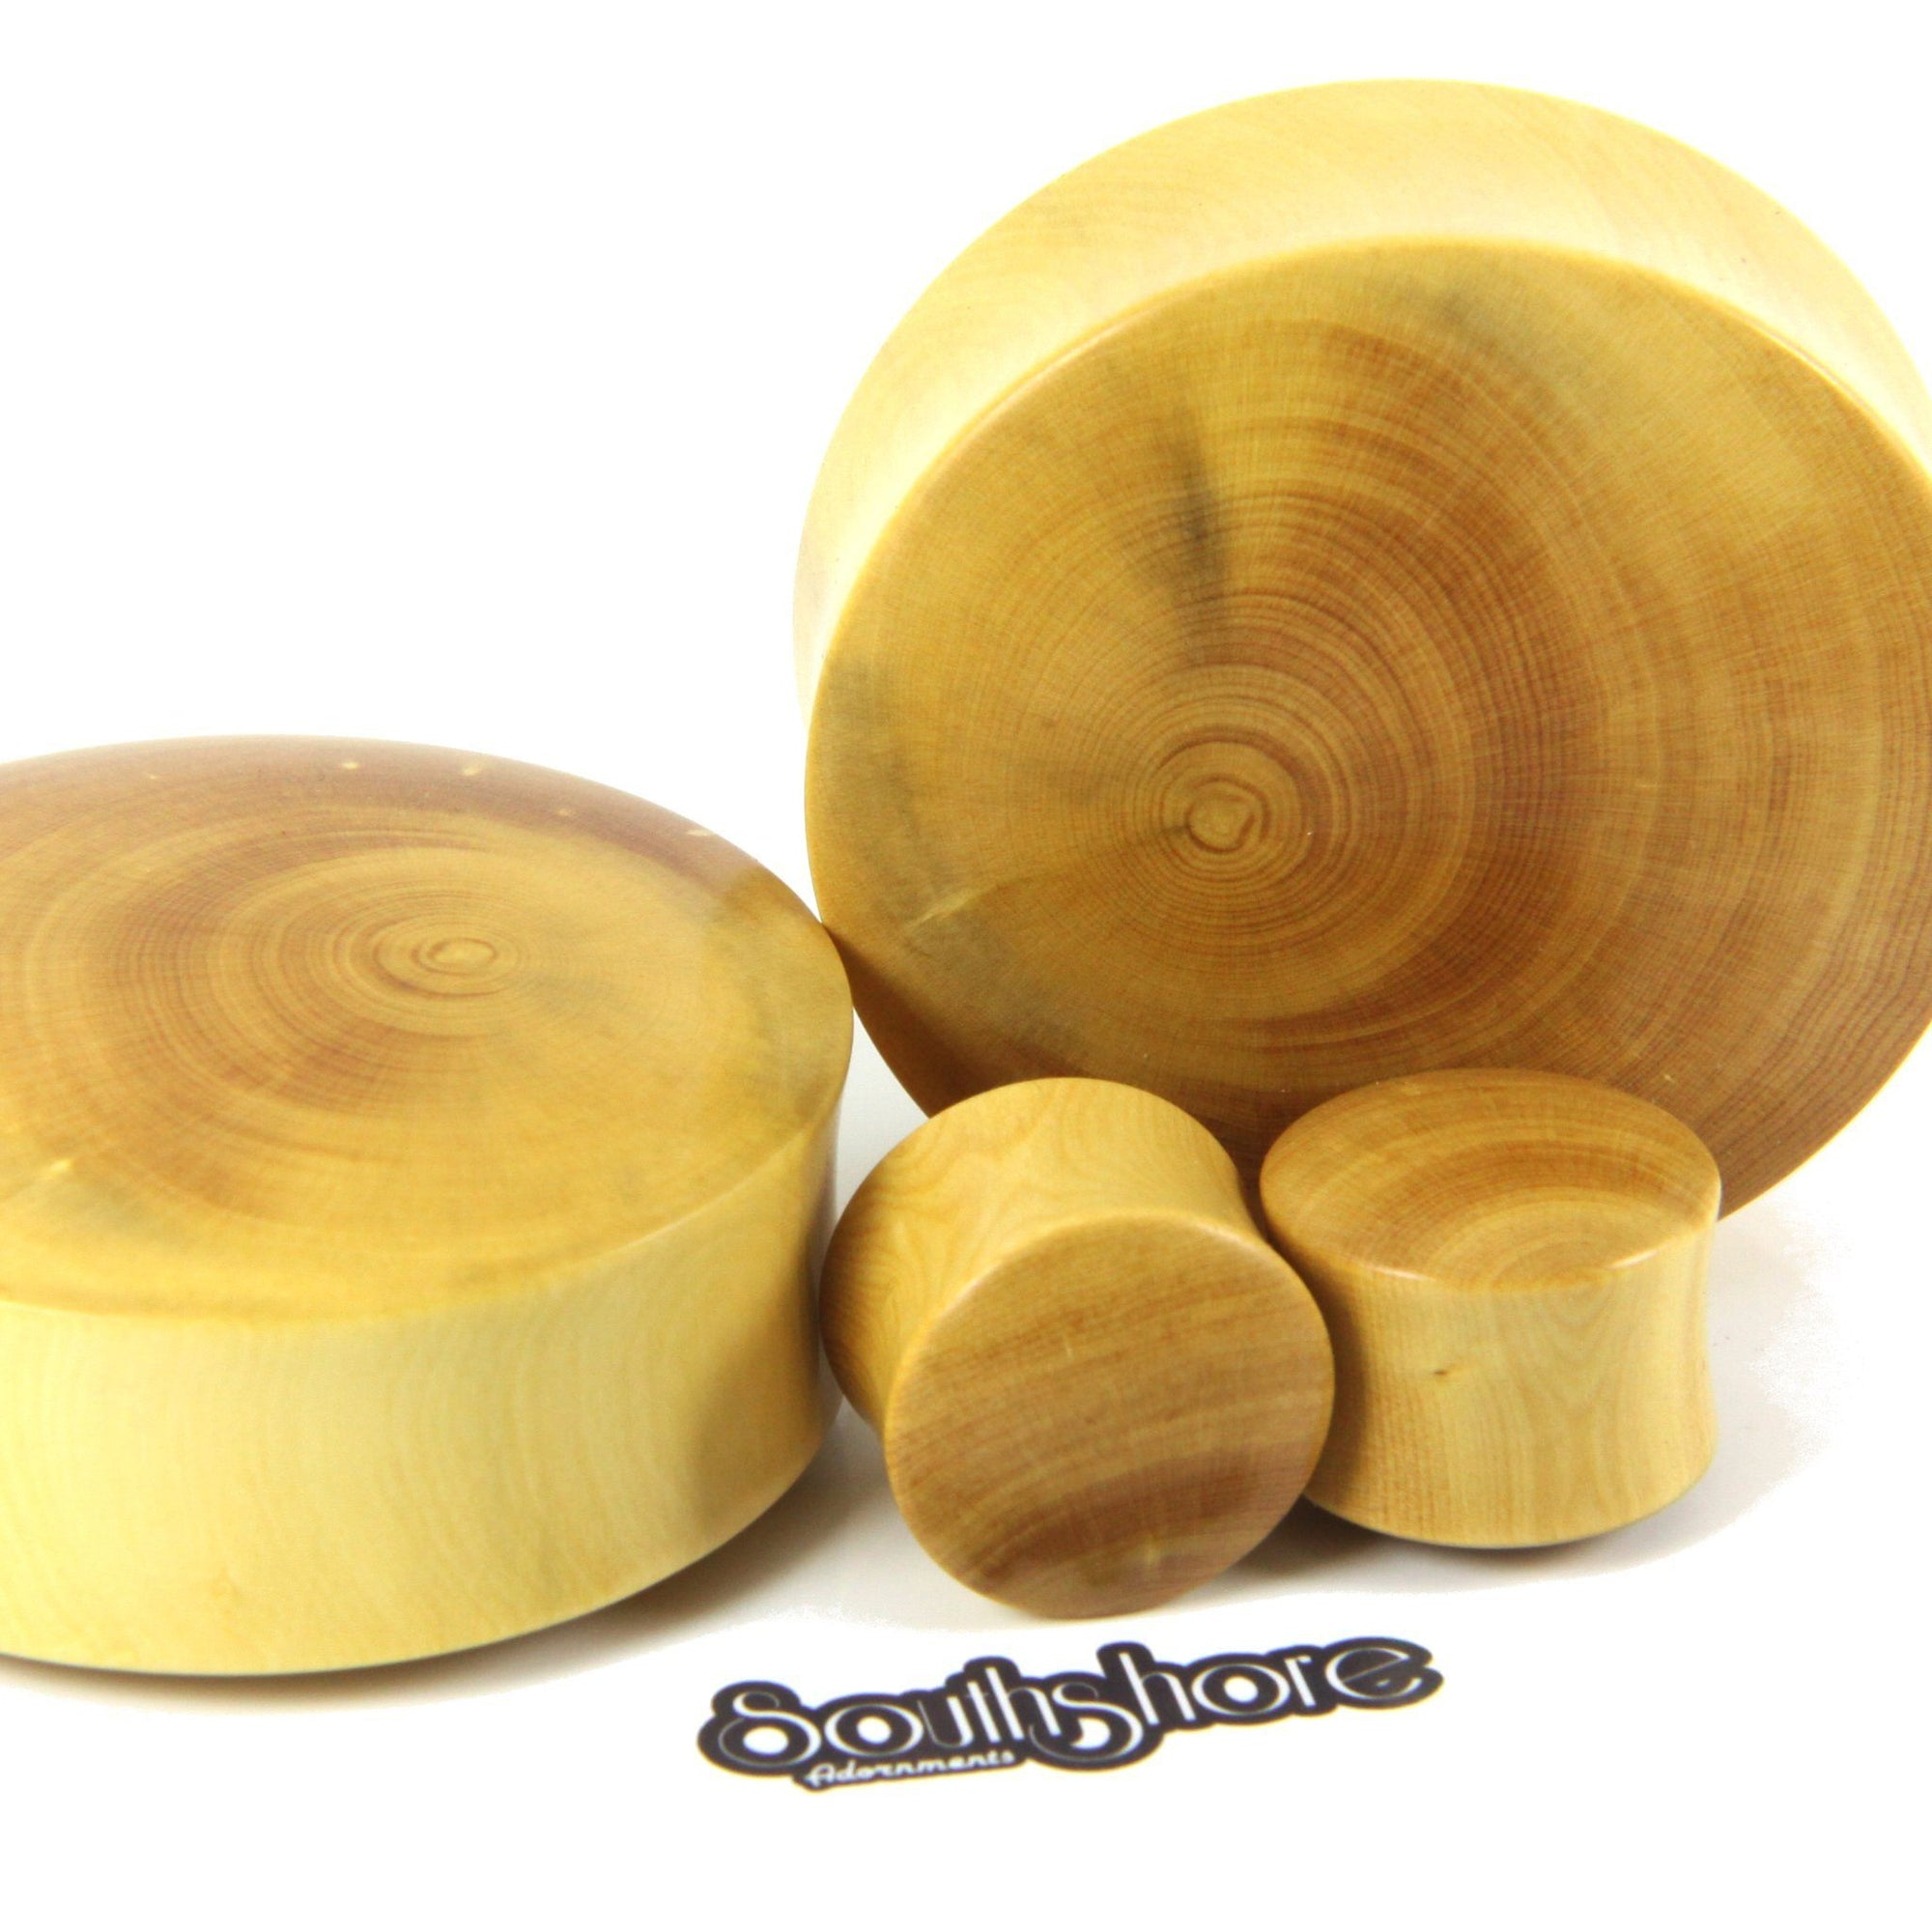 English Boxwood Plugs, jewellery, body jewellery. - Southshore Adornments